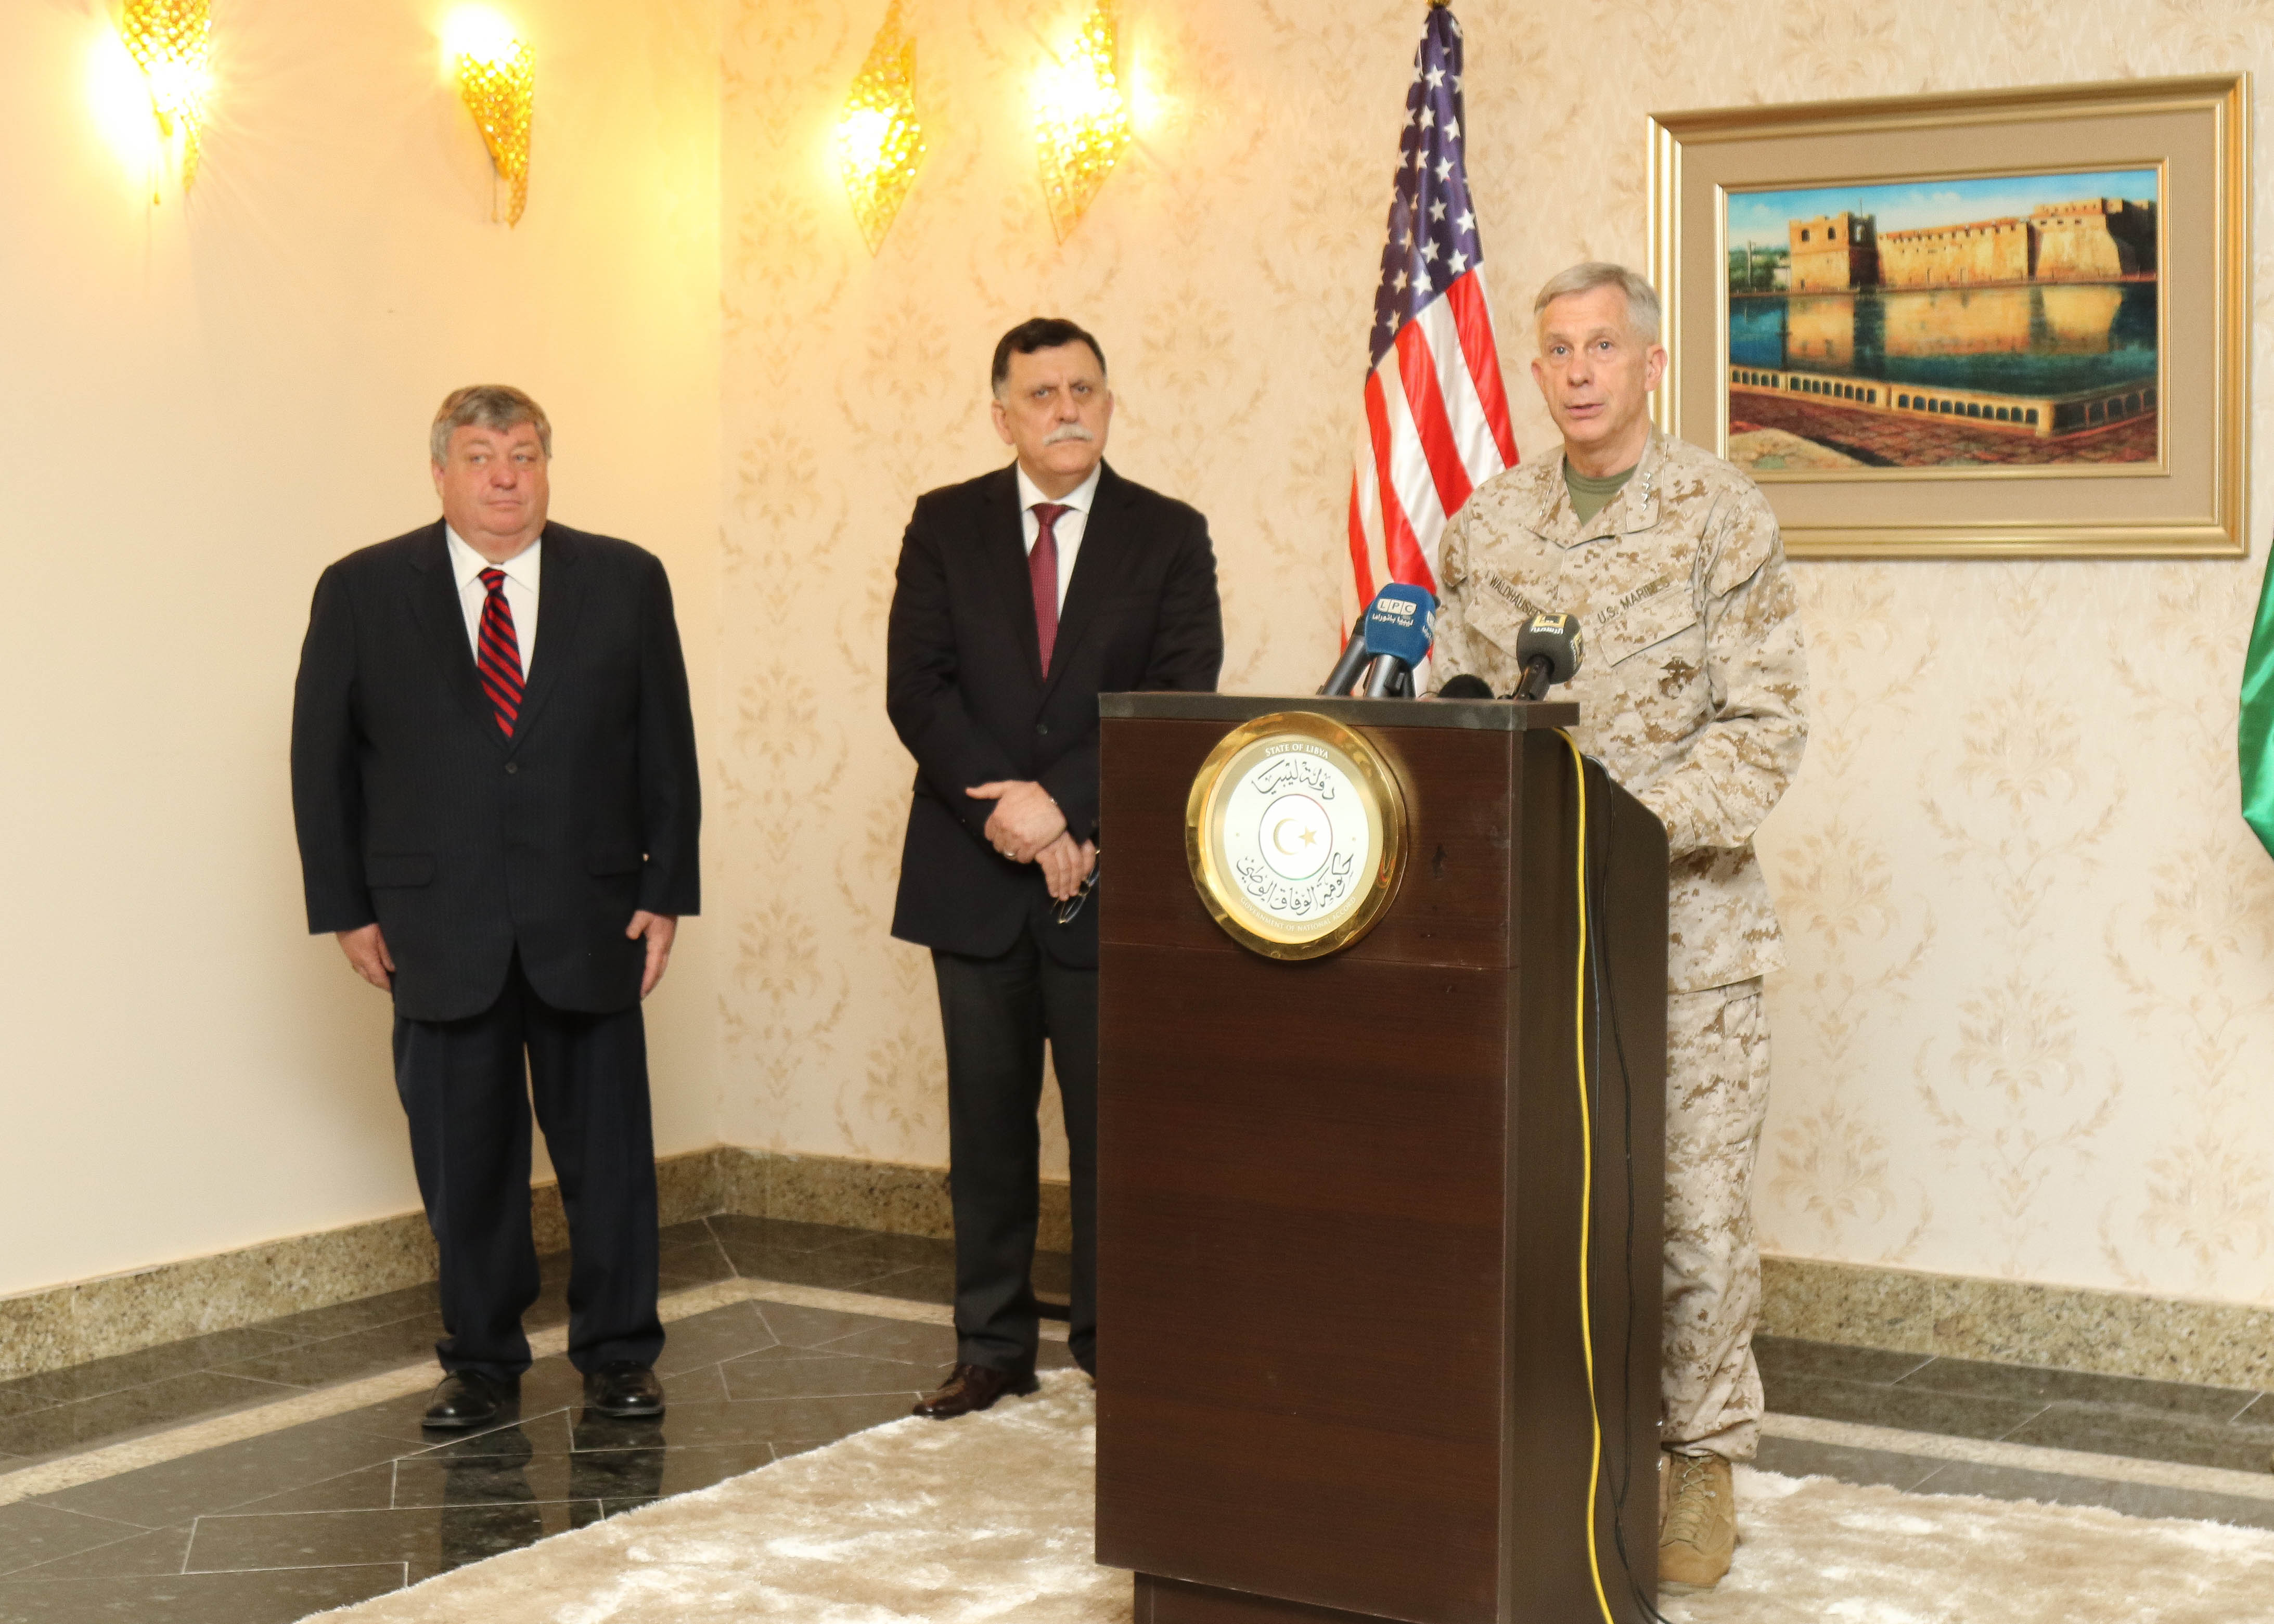 U.S. Marine Corps Gen. Thomas D. Waldhauser, Commander, U.S. Africa Command, spoke during a media engagement hosted by the Prime Minister of Libya's Unity Government Fayez al -Sarraj during a recent visit to Tripoli, Libya May 23, 2017. Waldhauser was joined by Amb. Peter Bodde, U.S. Ambassador to Libya . This marks the first time a a high ranking U.S. military official has been in Libya since 2014.